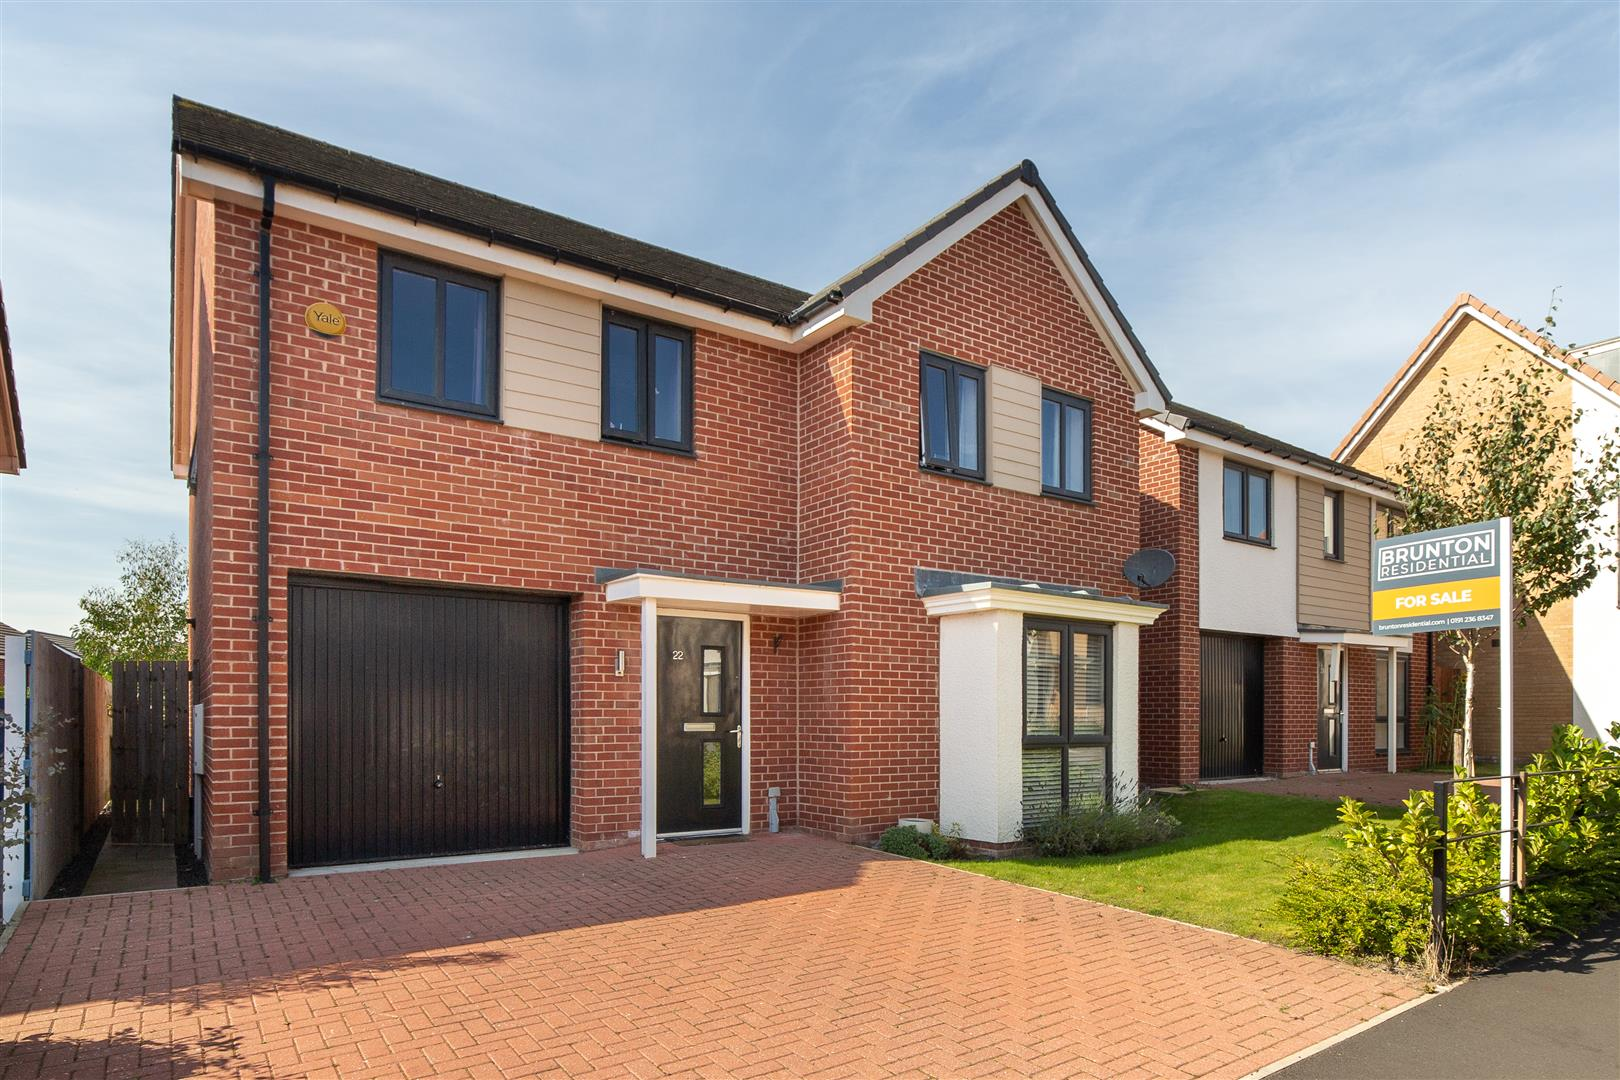 4 bed detached house for sale in Maynard Street, Great Park  - Property Image 1